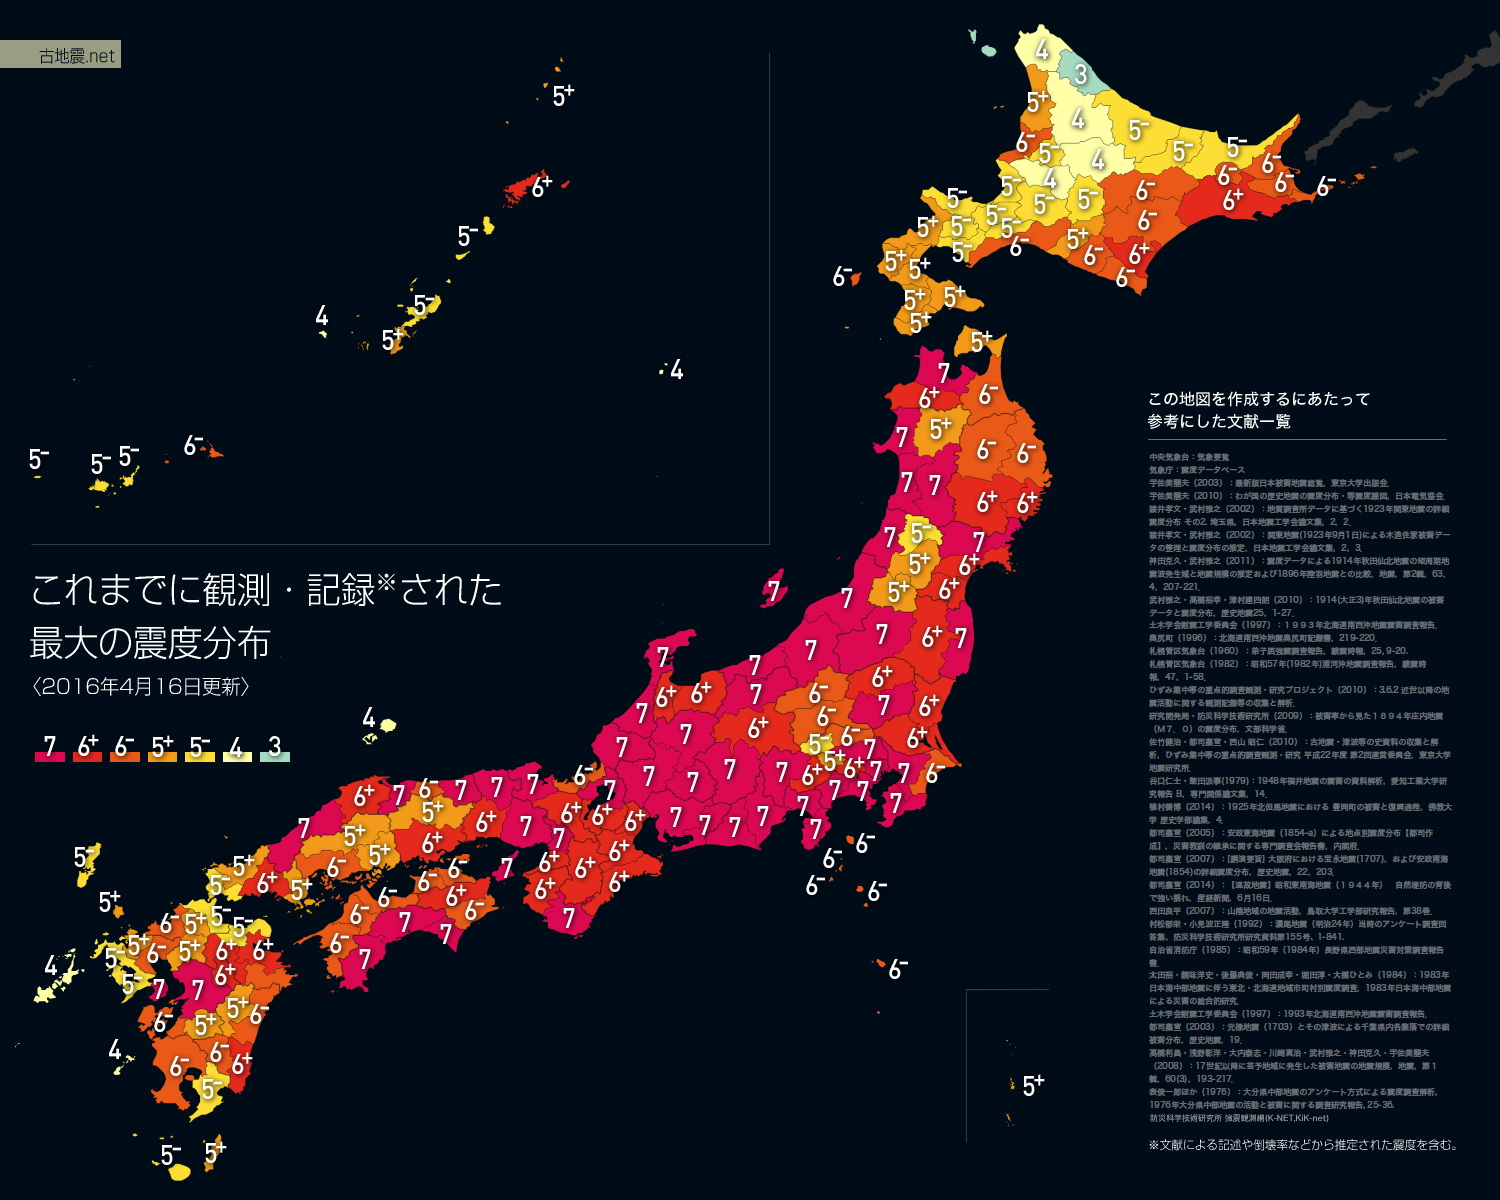 Maximum seismic intensity experienced in areas of Japan